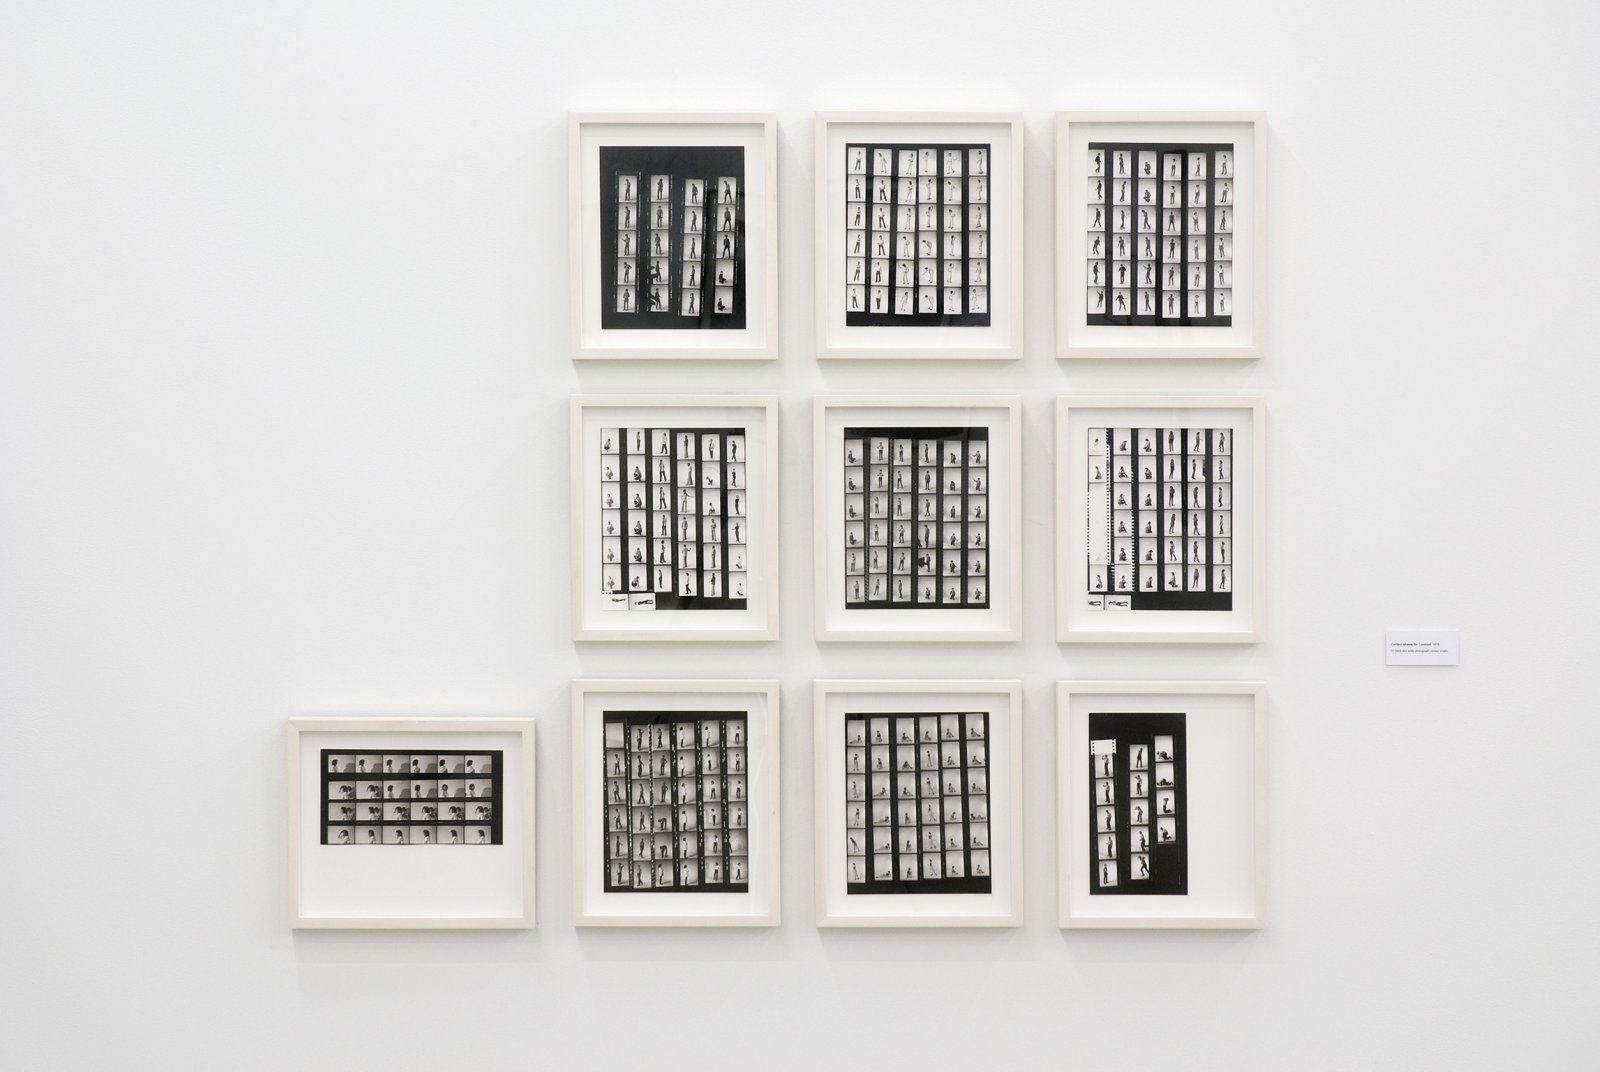 Ian Wallace, Contact Sheets for Lookout, 1979, 10 photo contact sheets, each 14 x 12 in. (34 x 29 cm) by Ian Wallace